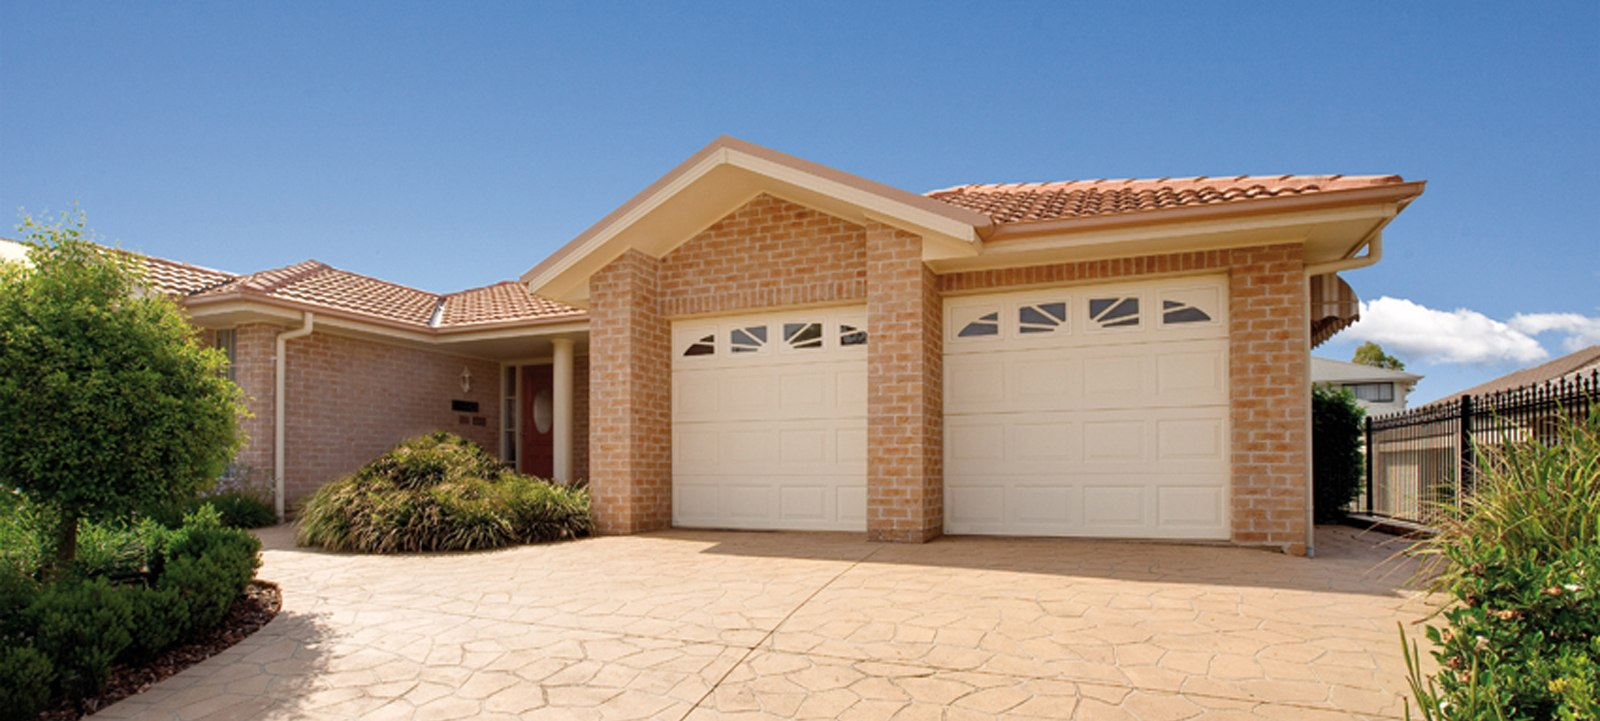 Panelift Garage Door AllStyle Garage Doors